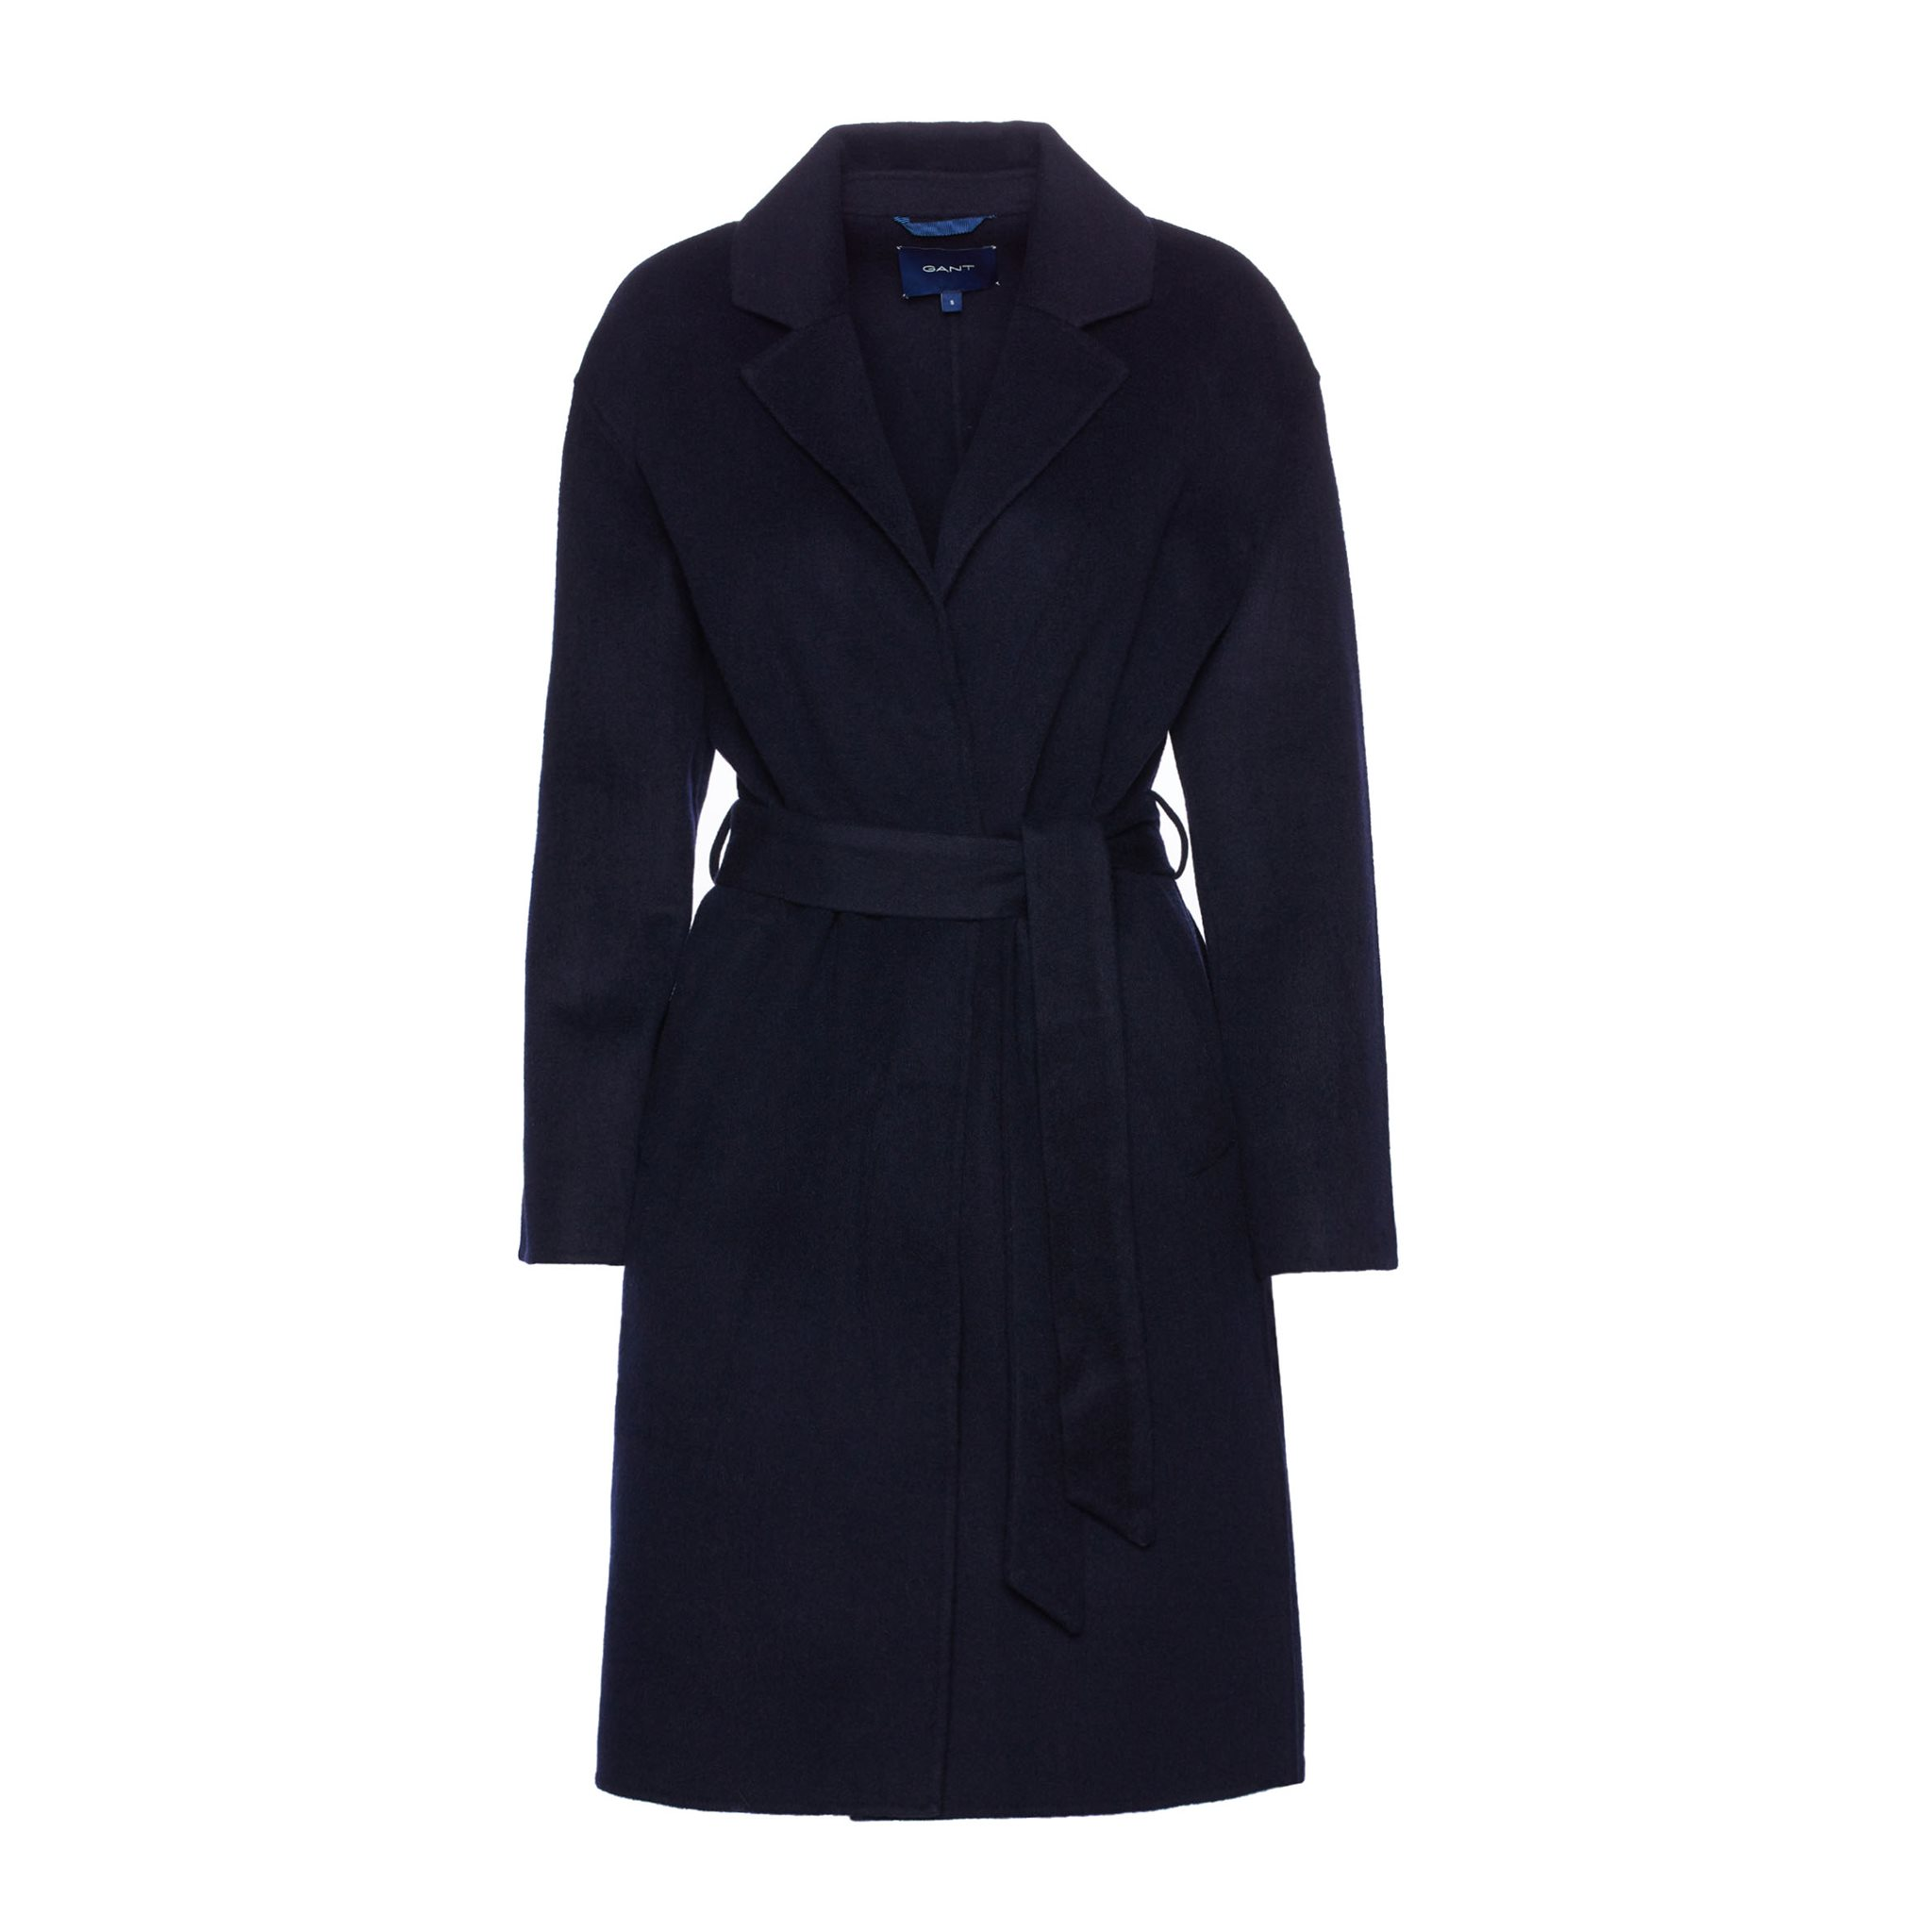 WOOL BLEND BELTED COAT GANT WOMAN